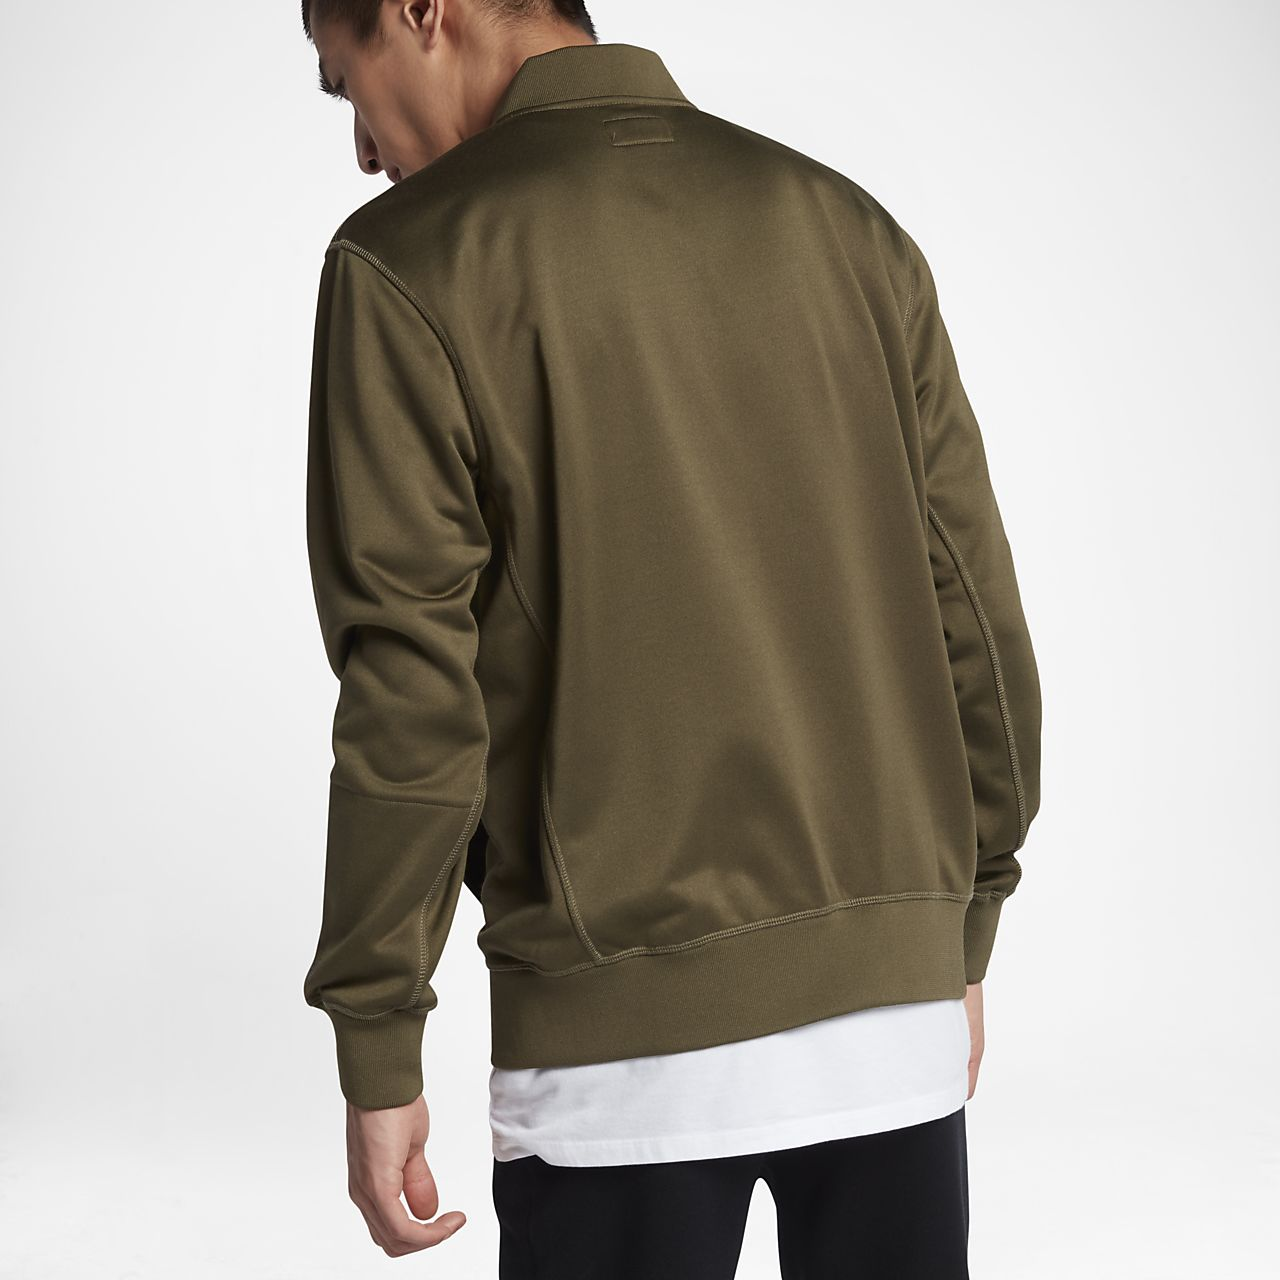 Converse men's cotton bomber jacket